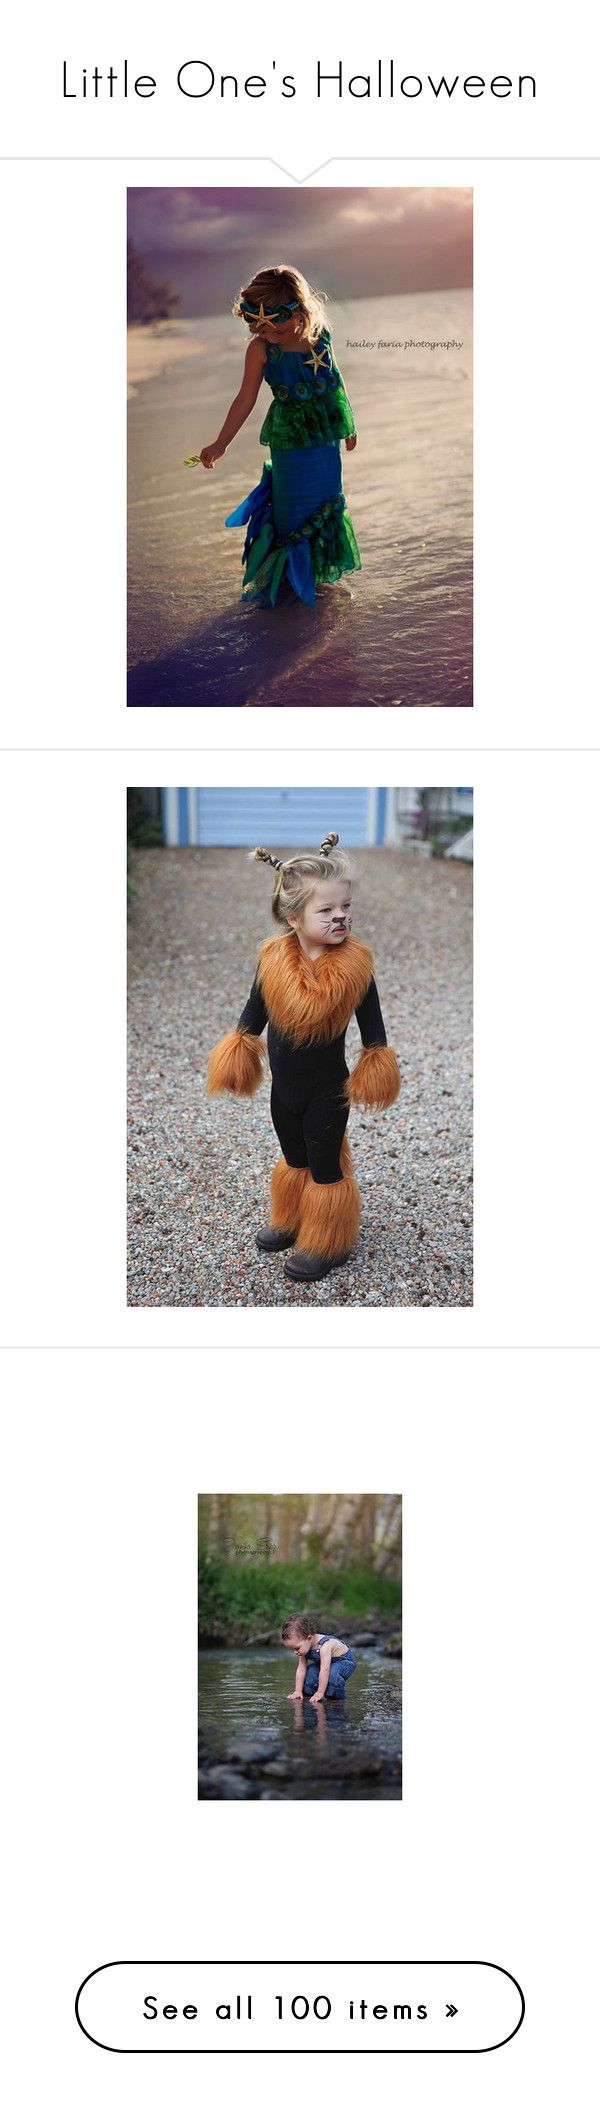 """""""Little One's Halloween"""" by sbhackney ❤ liked on Polyvore featuring backgrounds, men's fashion, men's clothing, men's socks, mens sports socks, mens sport socks, mens knee length socks, mens socks, mens knee high socks and accessories"""